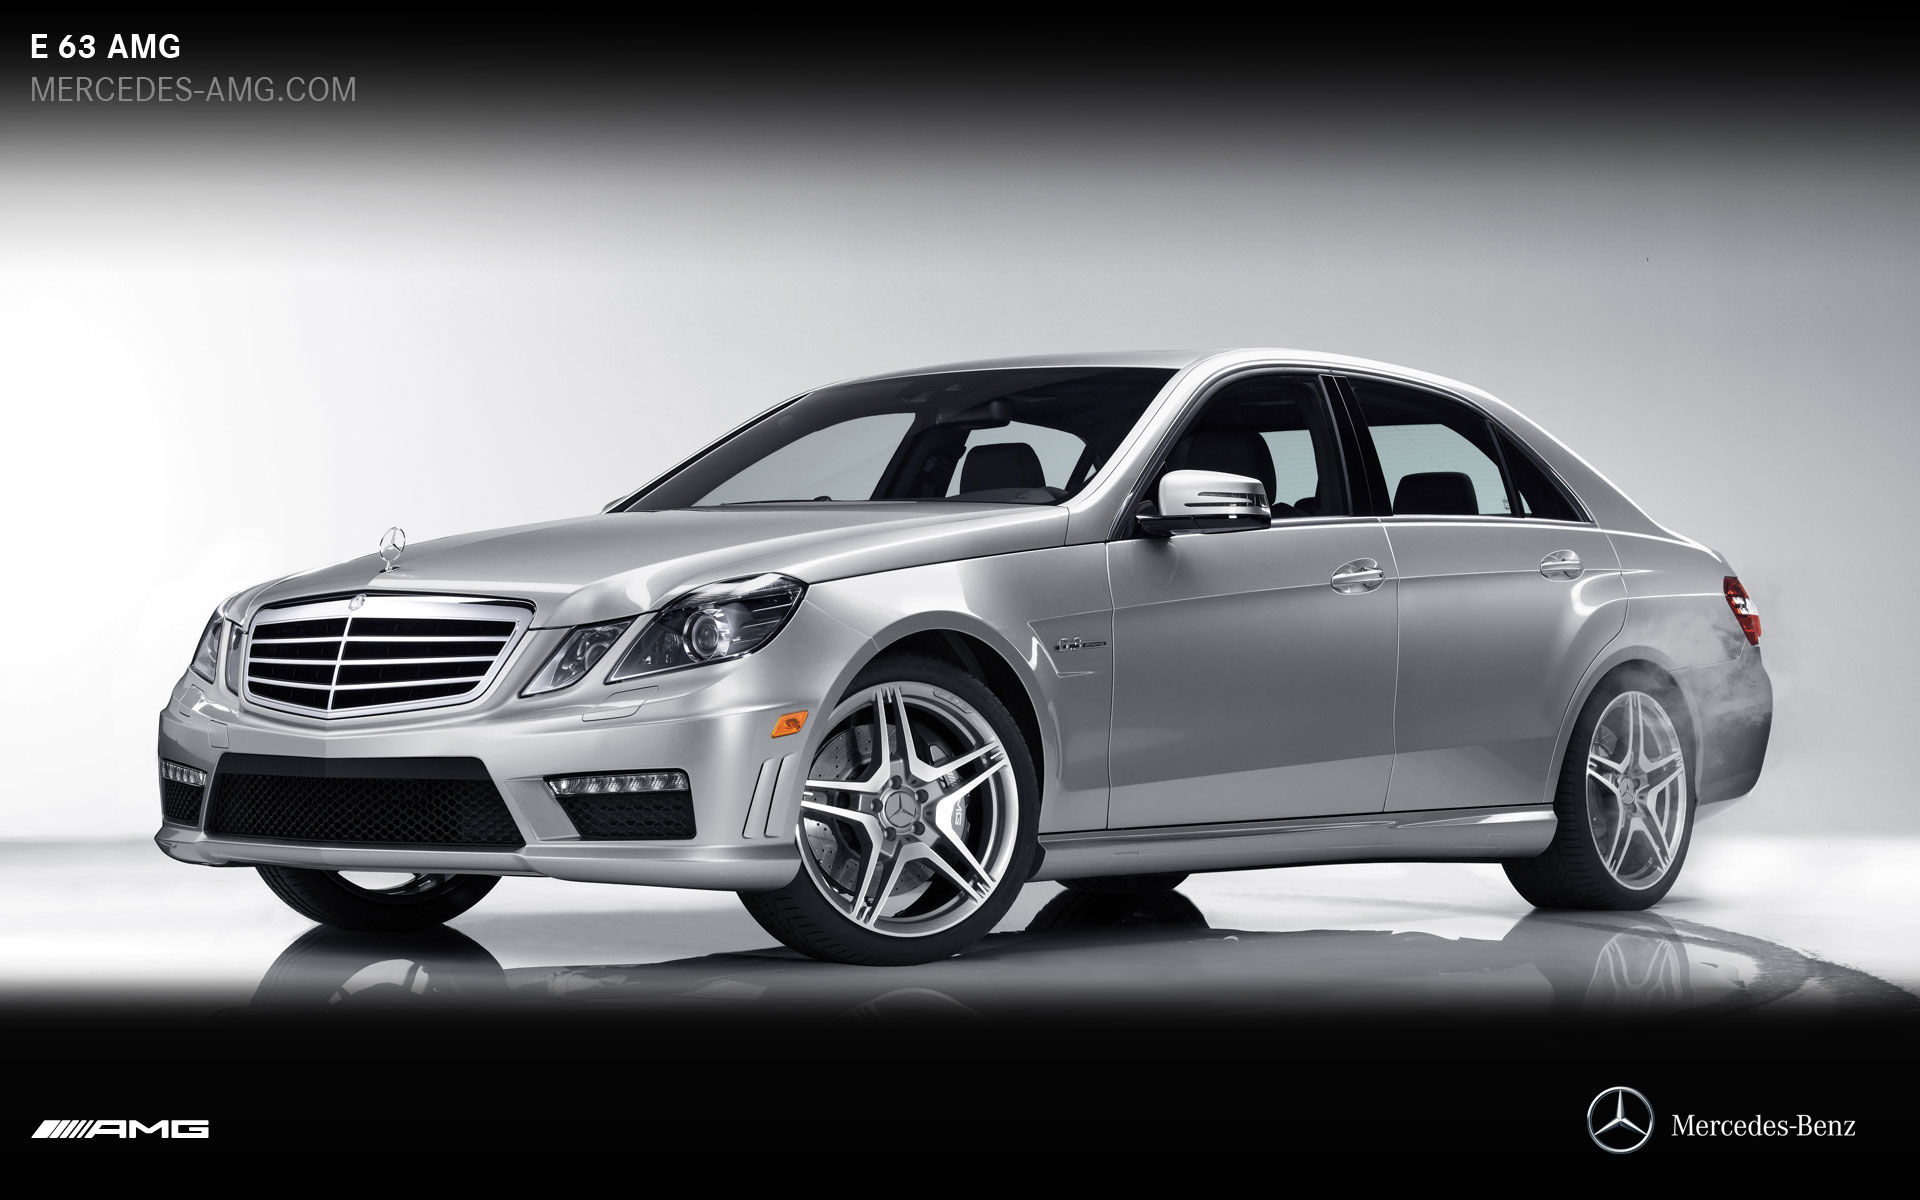 H 39 s auto consultant save money save time page 18 for 2011 mercedes benz e63 amg